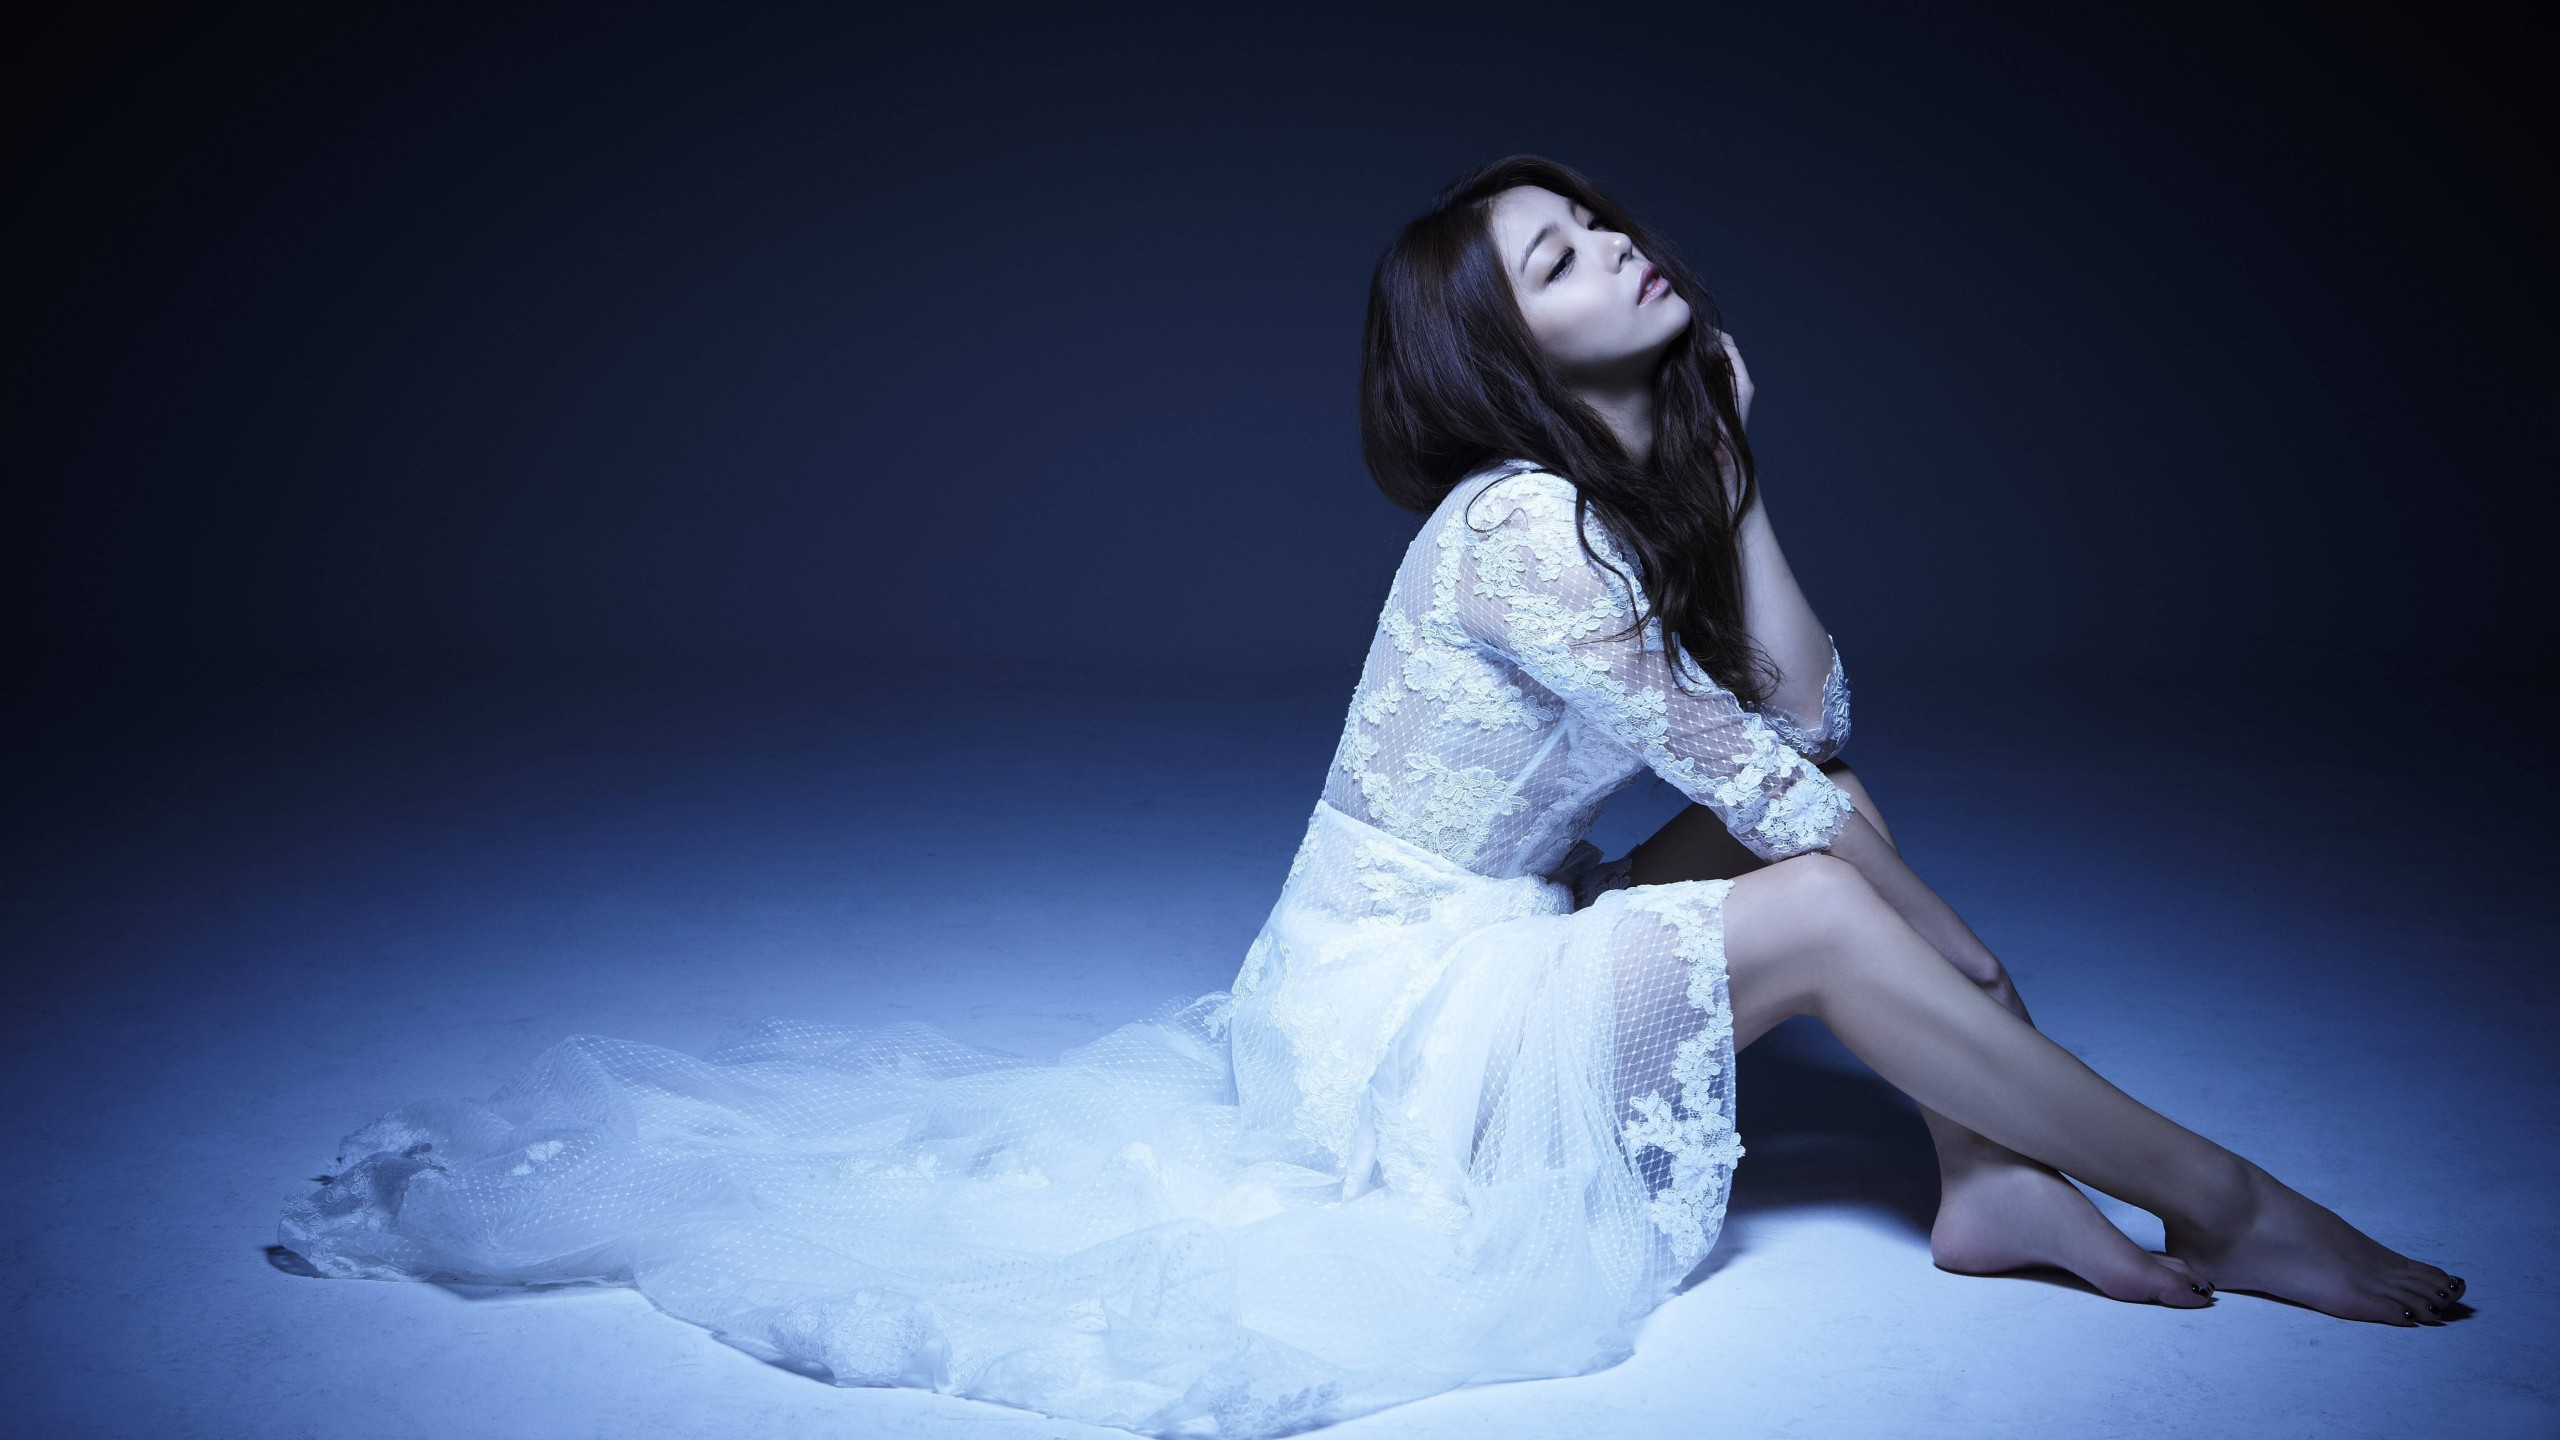 Wallpaper Ailee Top music artist and bands singer Celebrities 4914 2560x1440